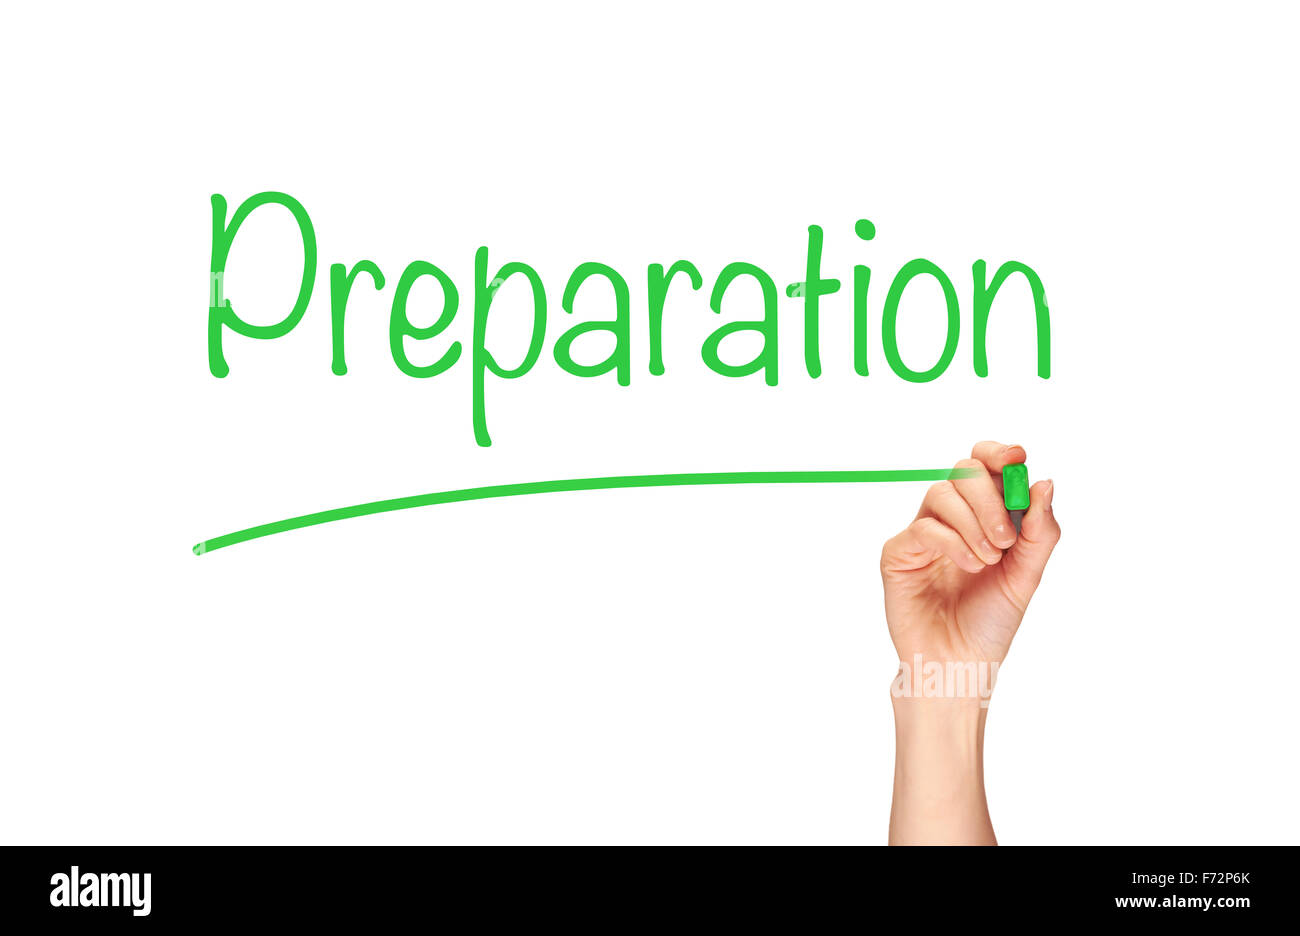 Preparation, written in marker on a clear screen. - Stock Image